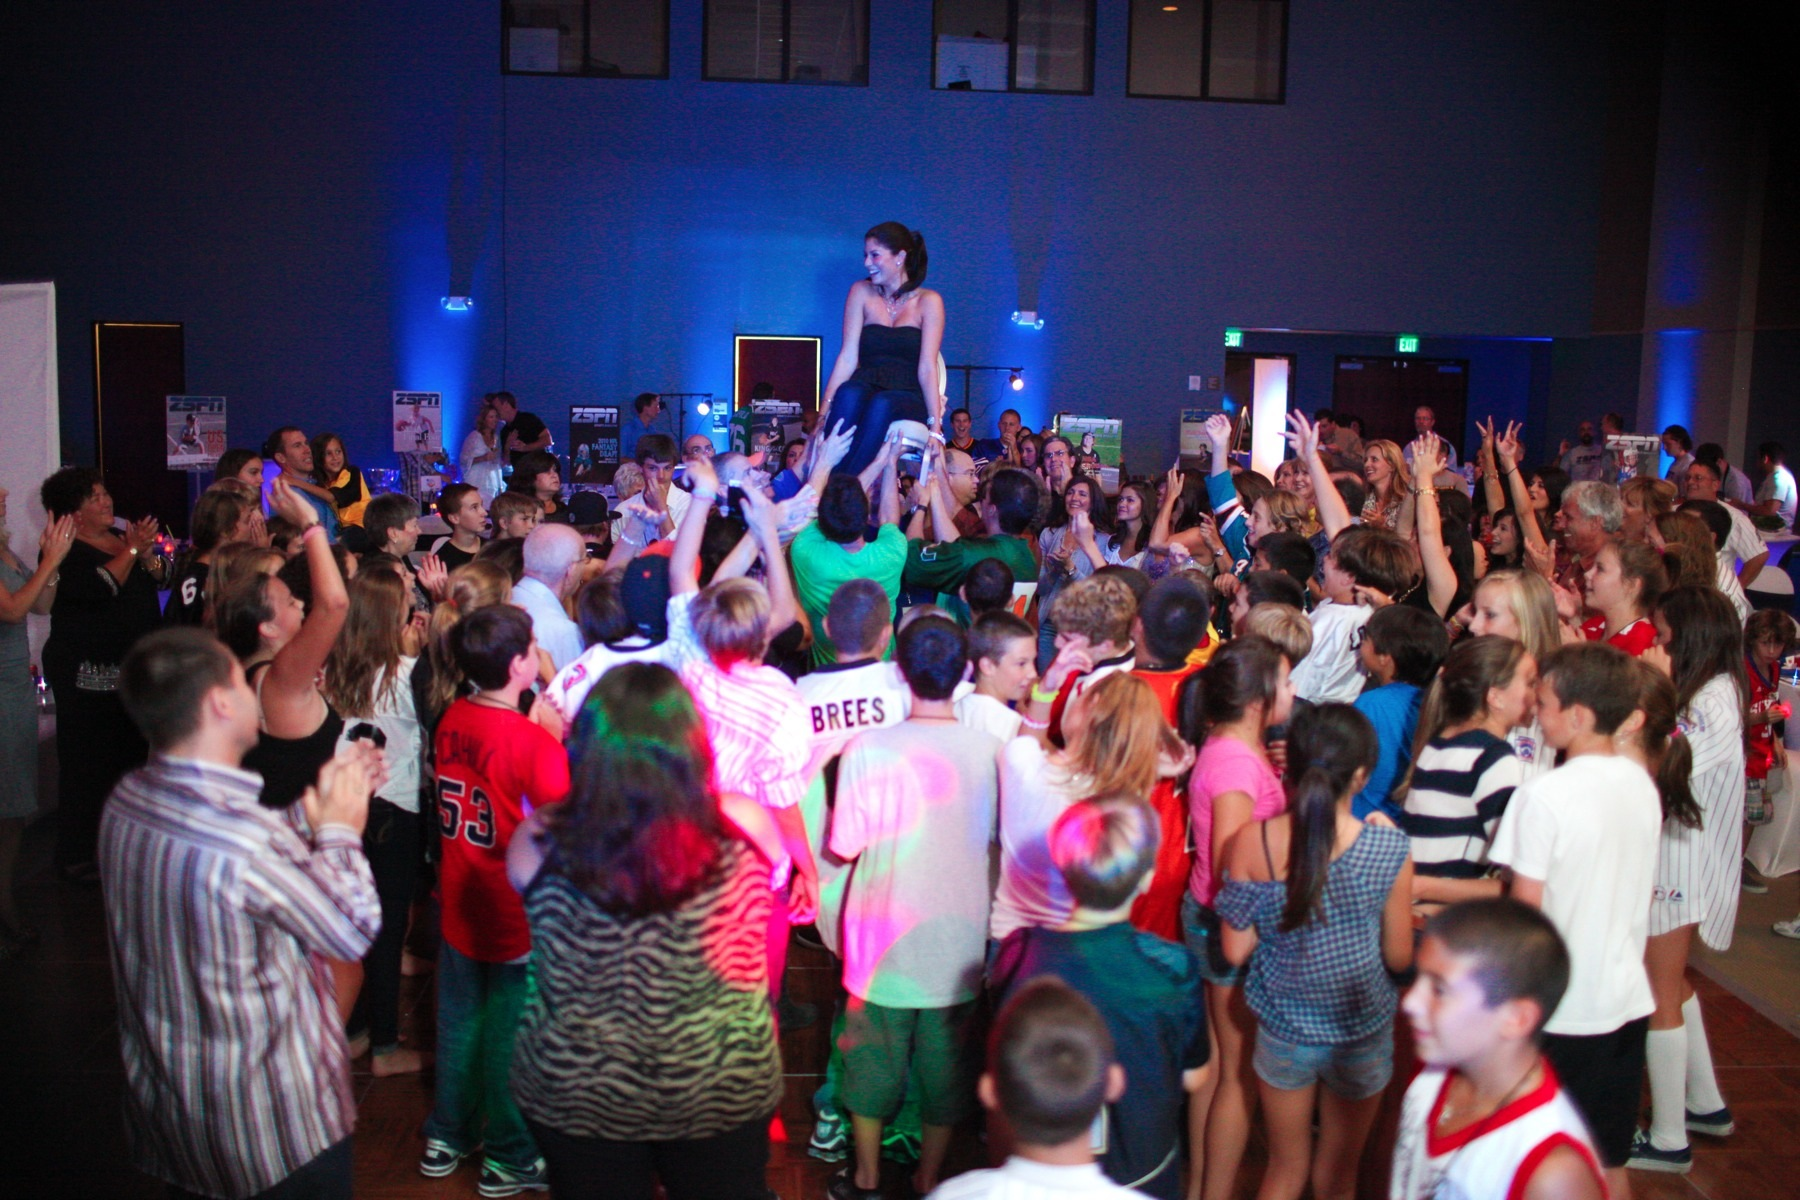 bat_mitzvah_bar_mitzvah_san_francisco_bay_area_photographer_party_photography_087